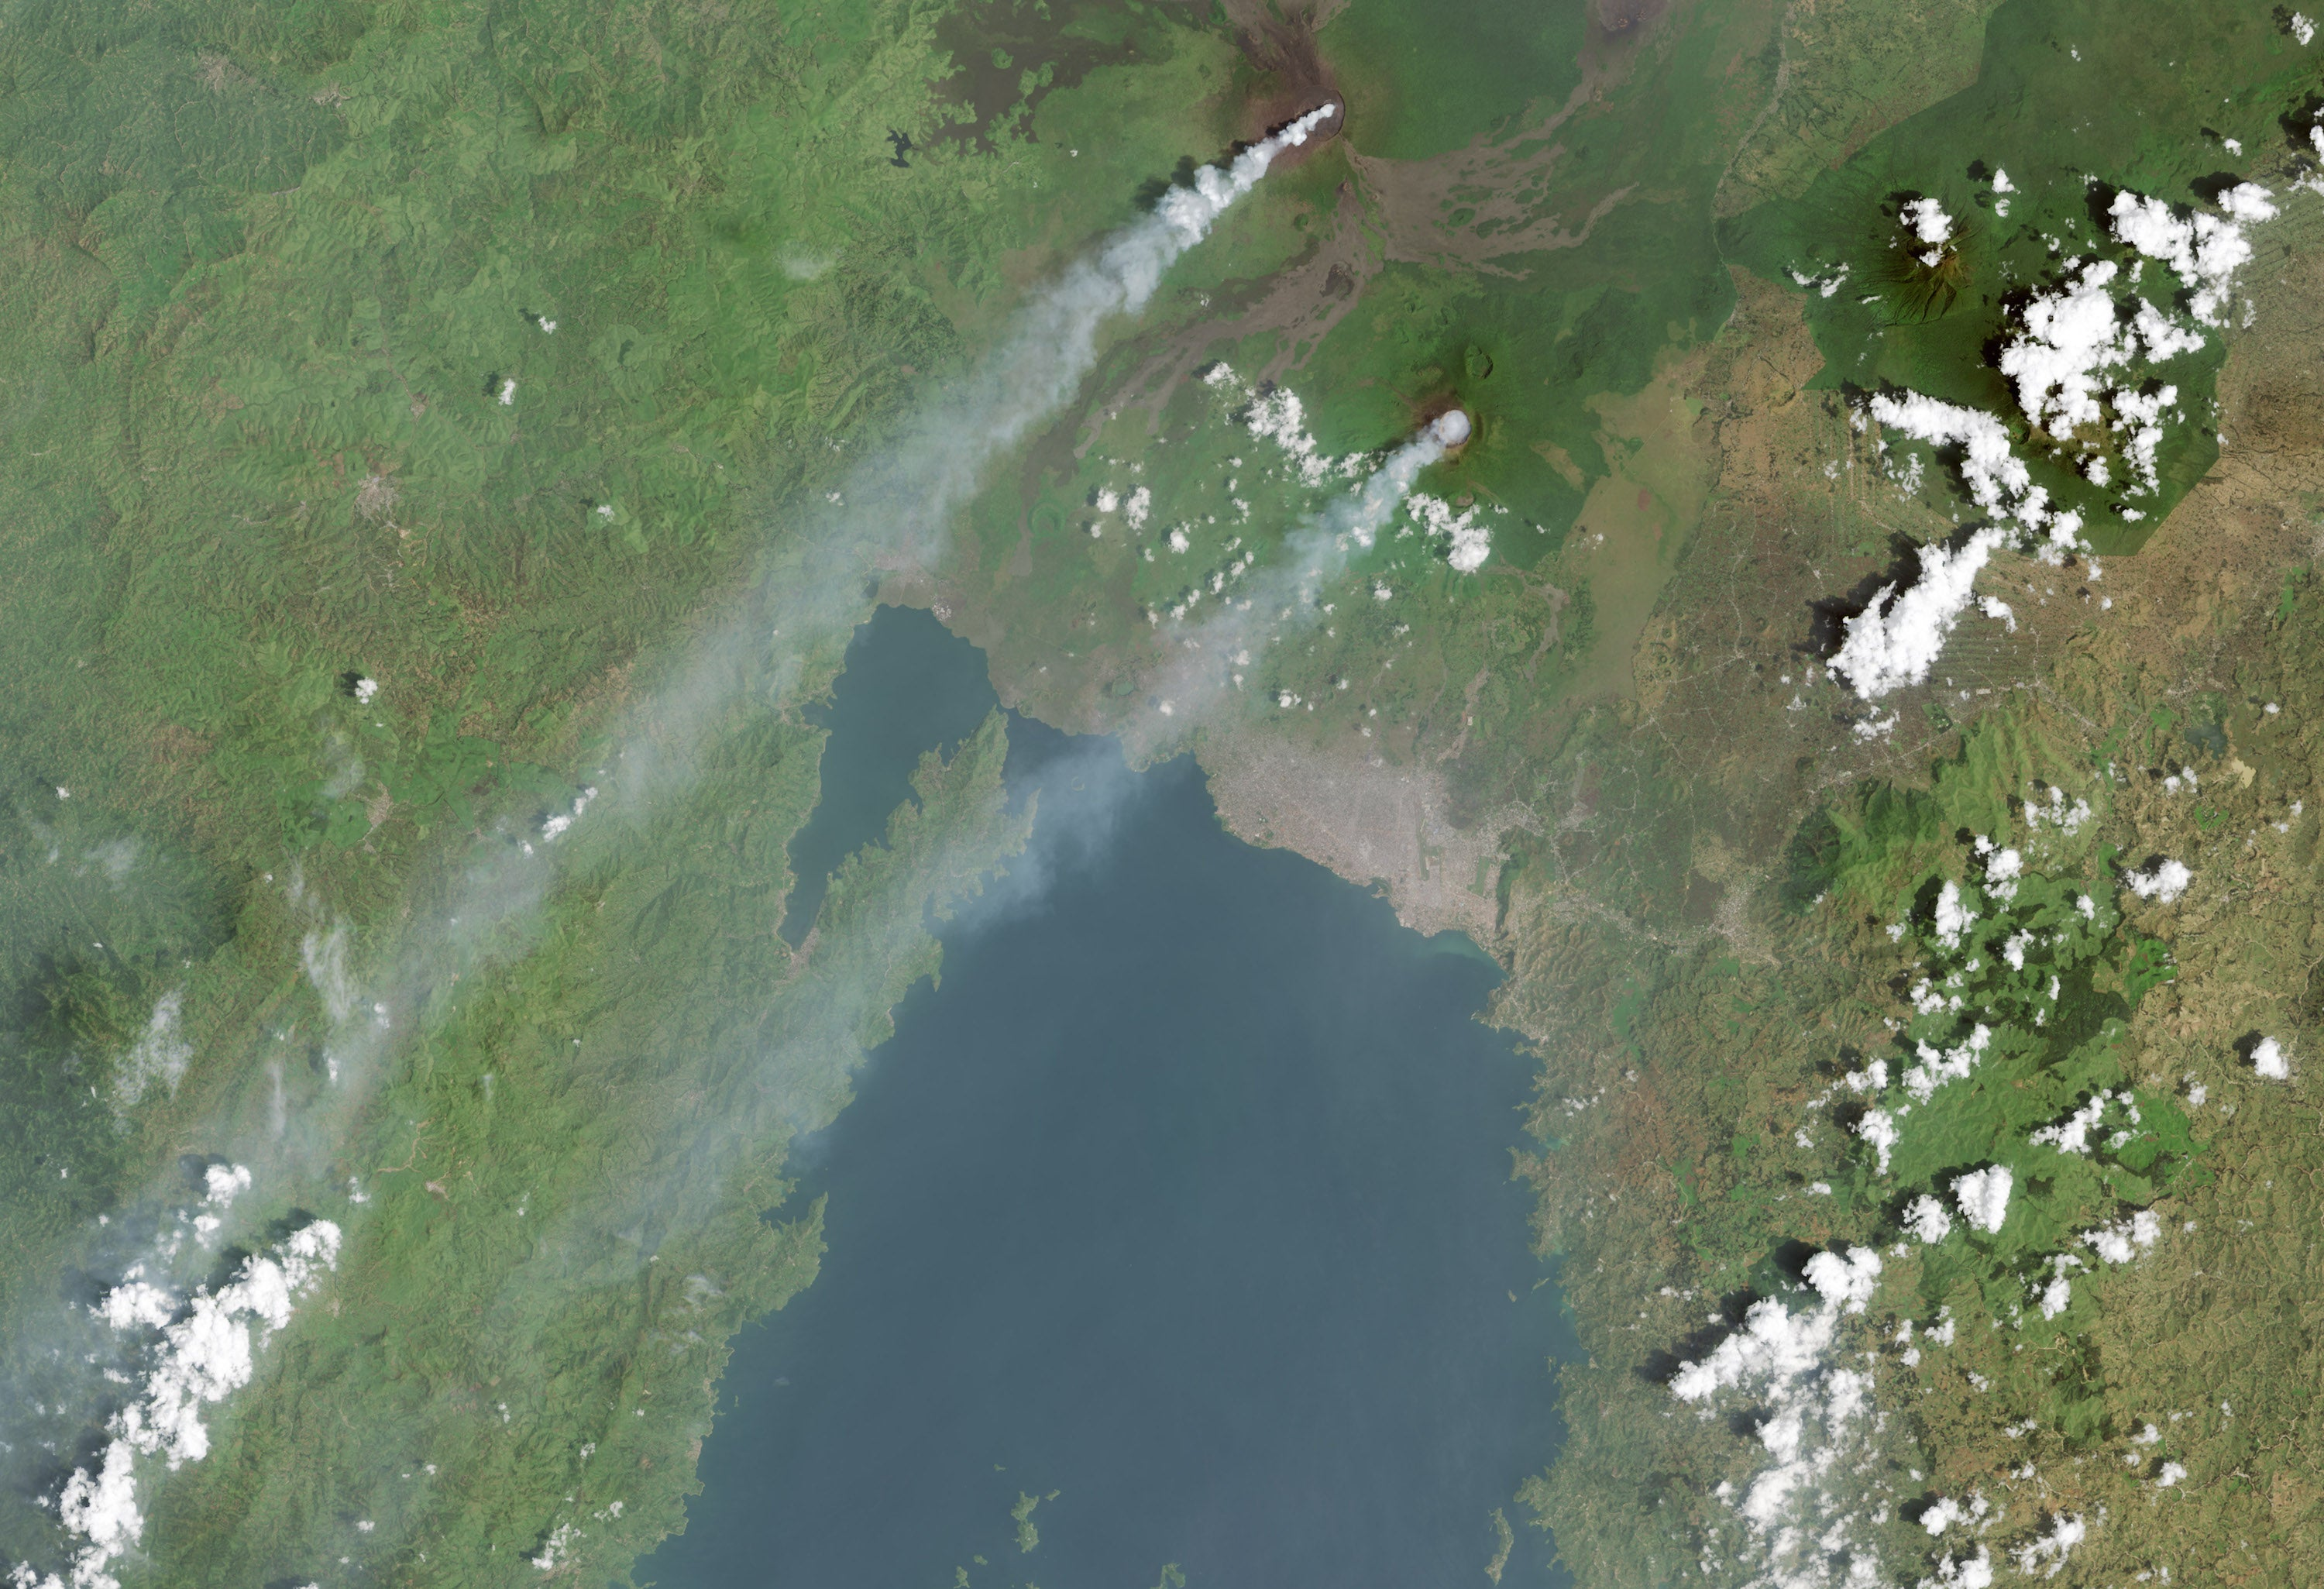 A Rare Glimpse of Two Volcanic Plumes in Central Africa